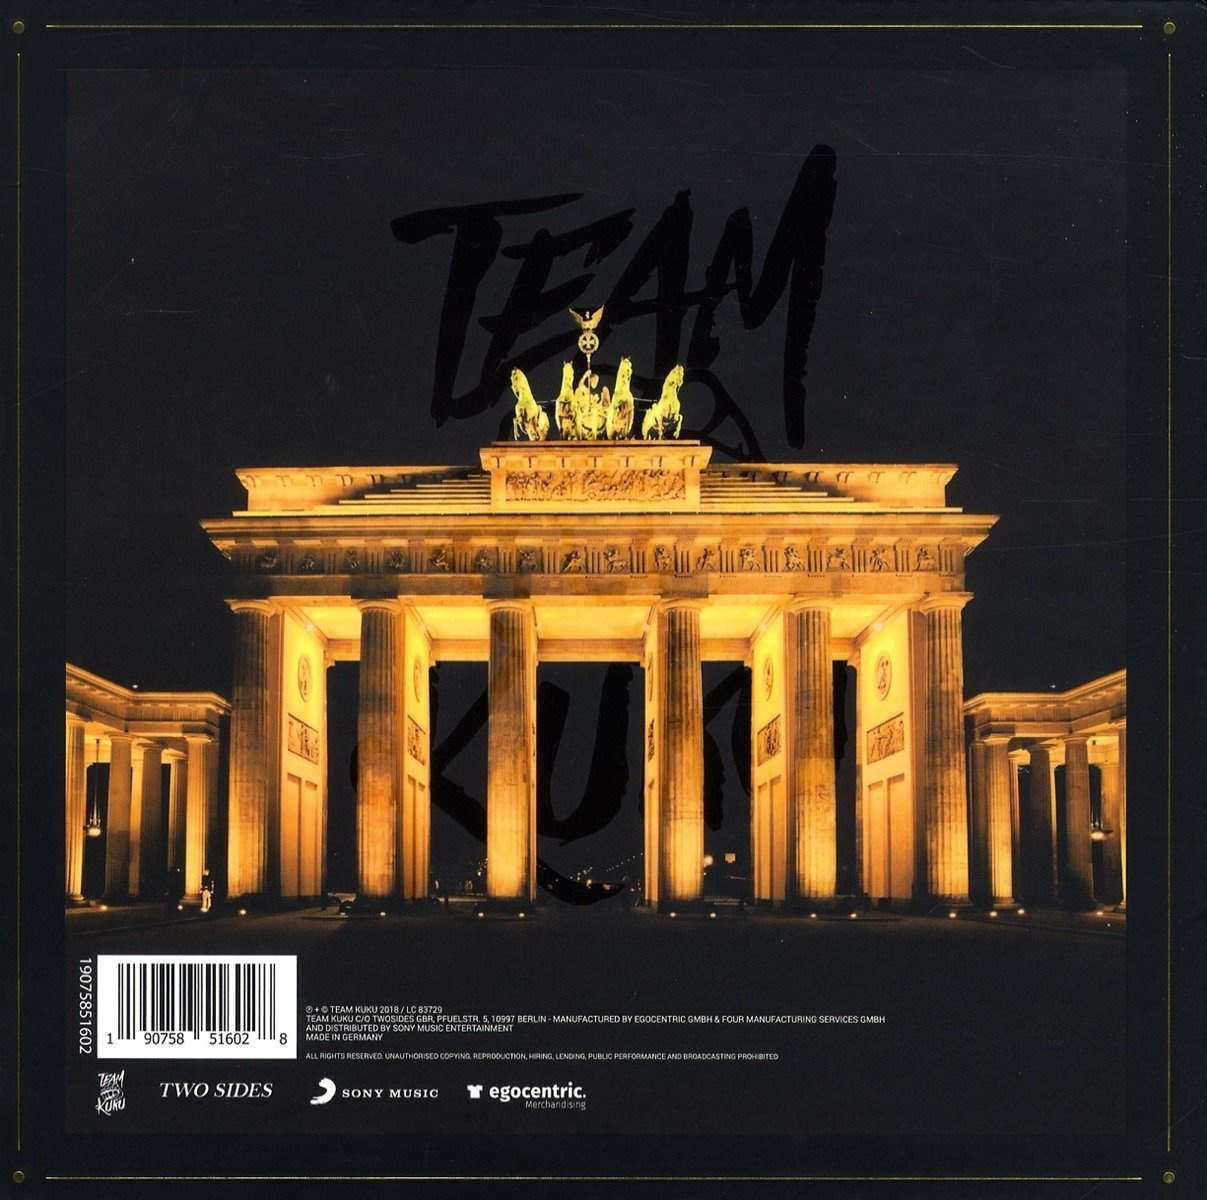 Berlin lebt 2 lyrics